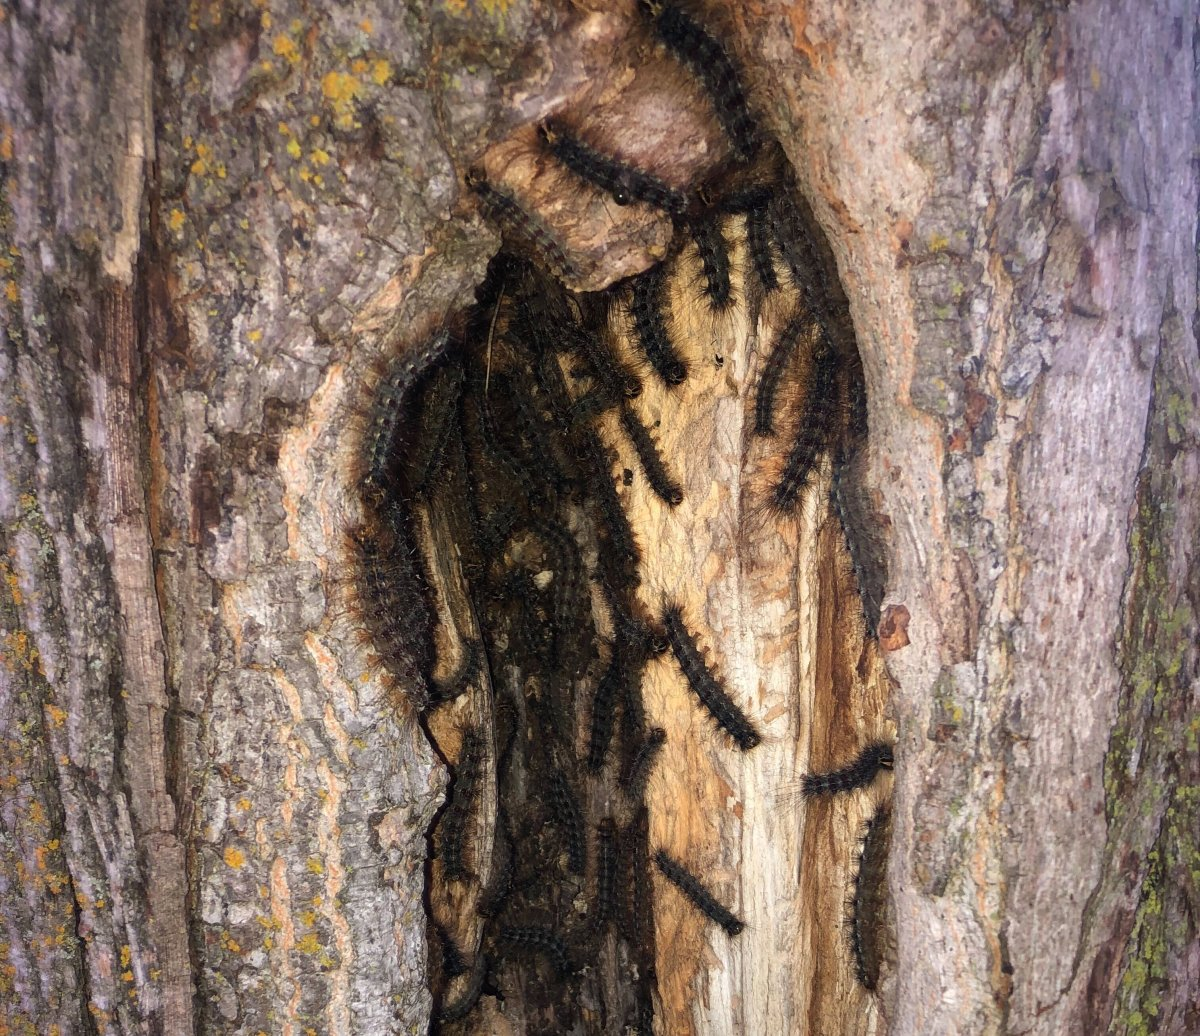 Dozens of gypsy moth caterpillars were found inside a hollowed-out tree trunk in Guelph's north end.